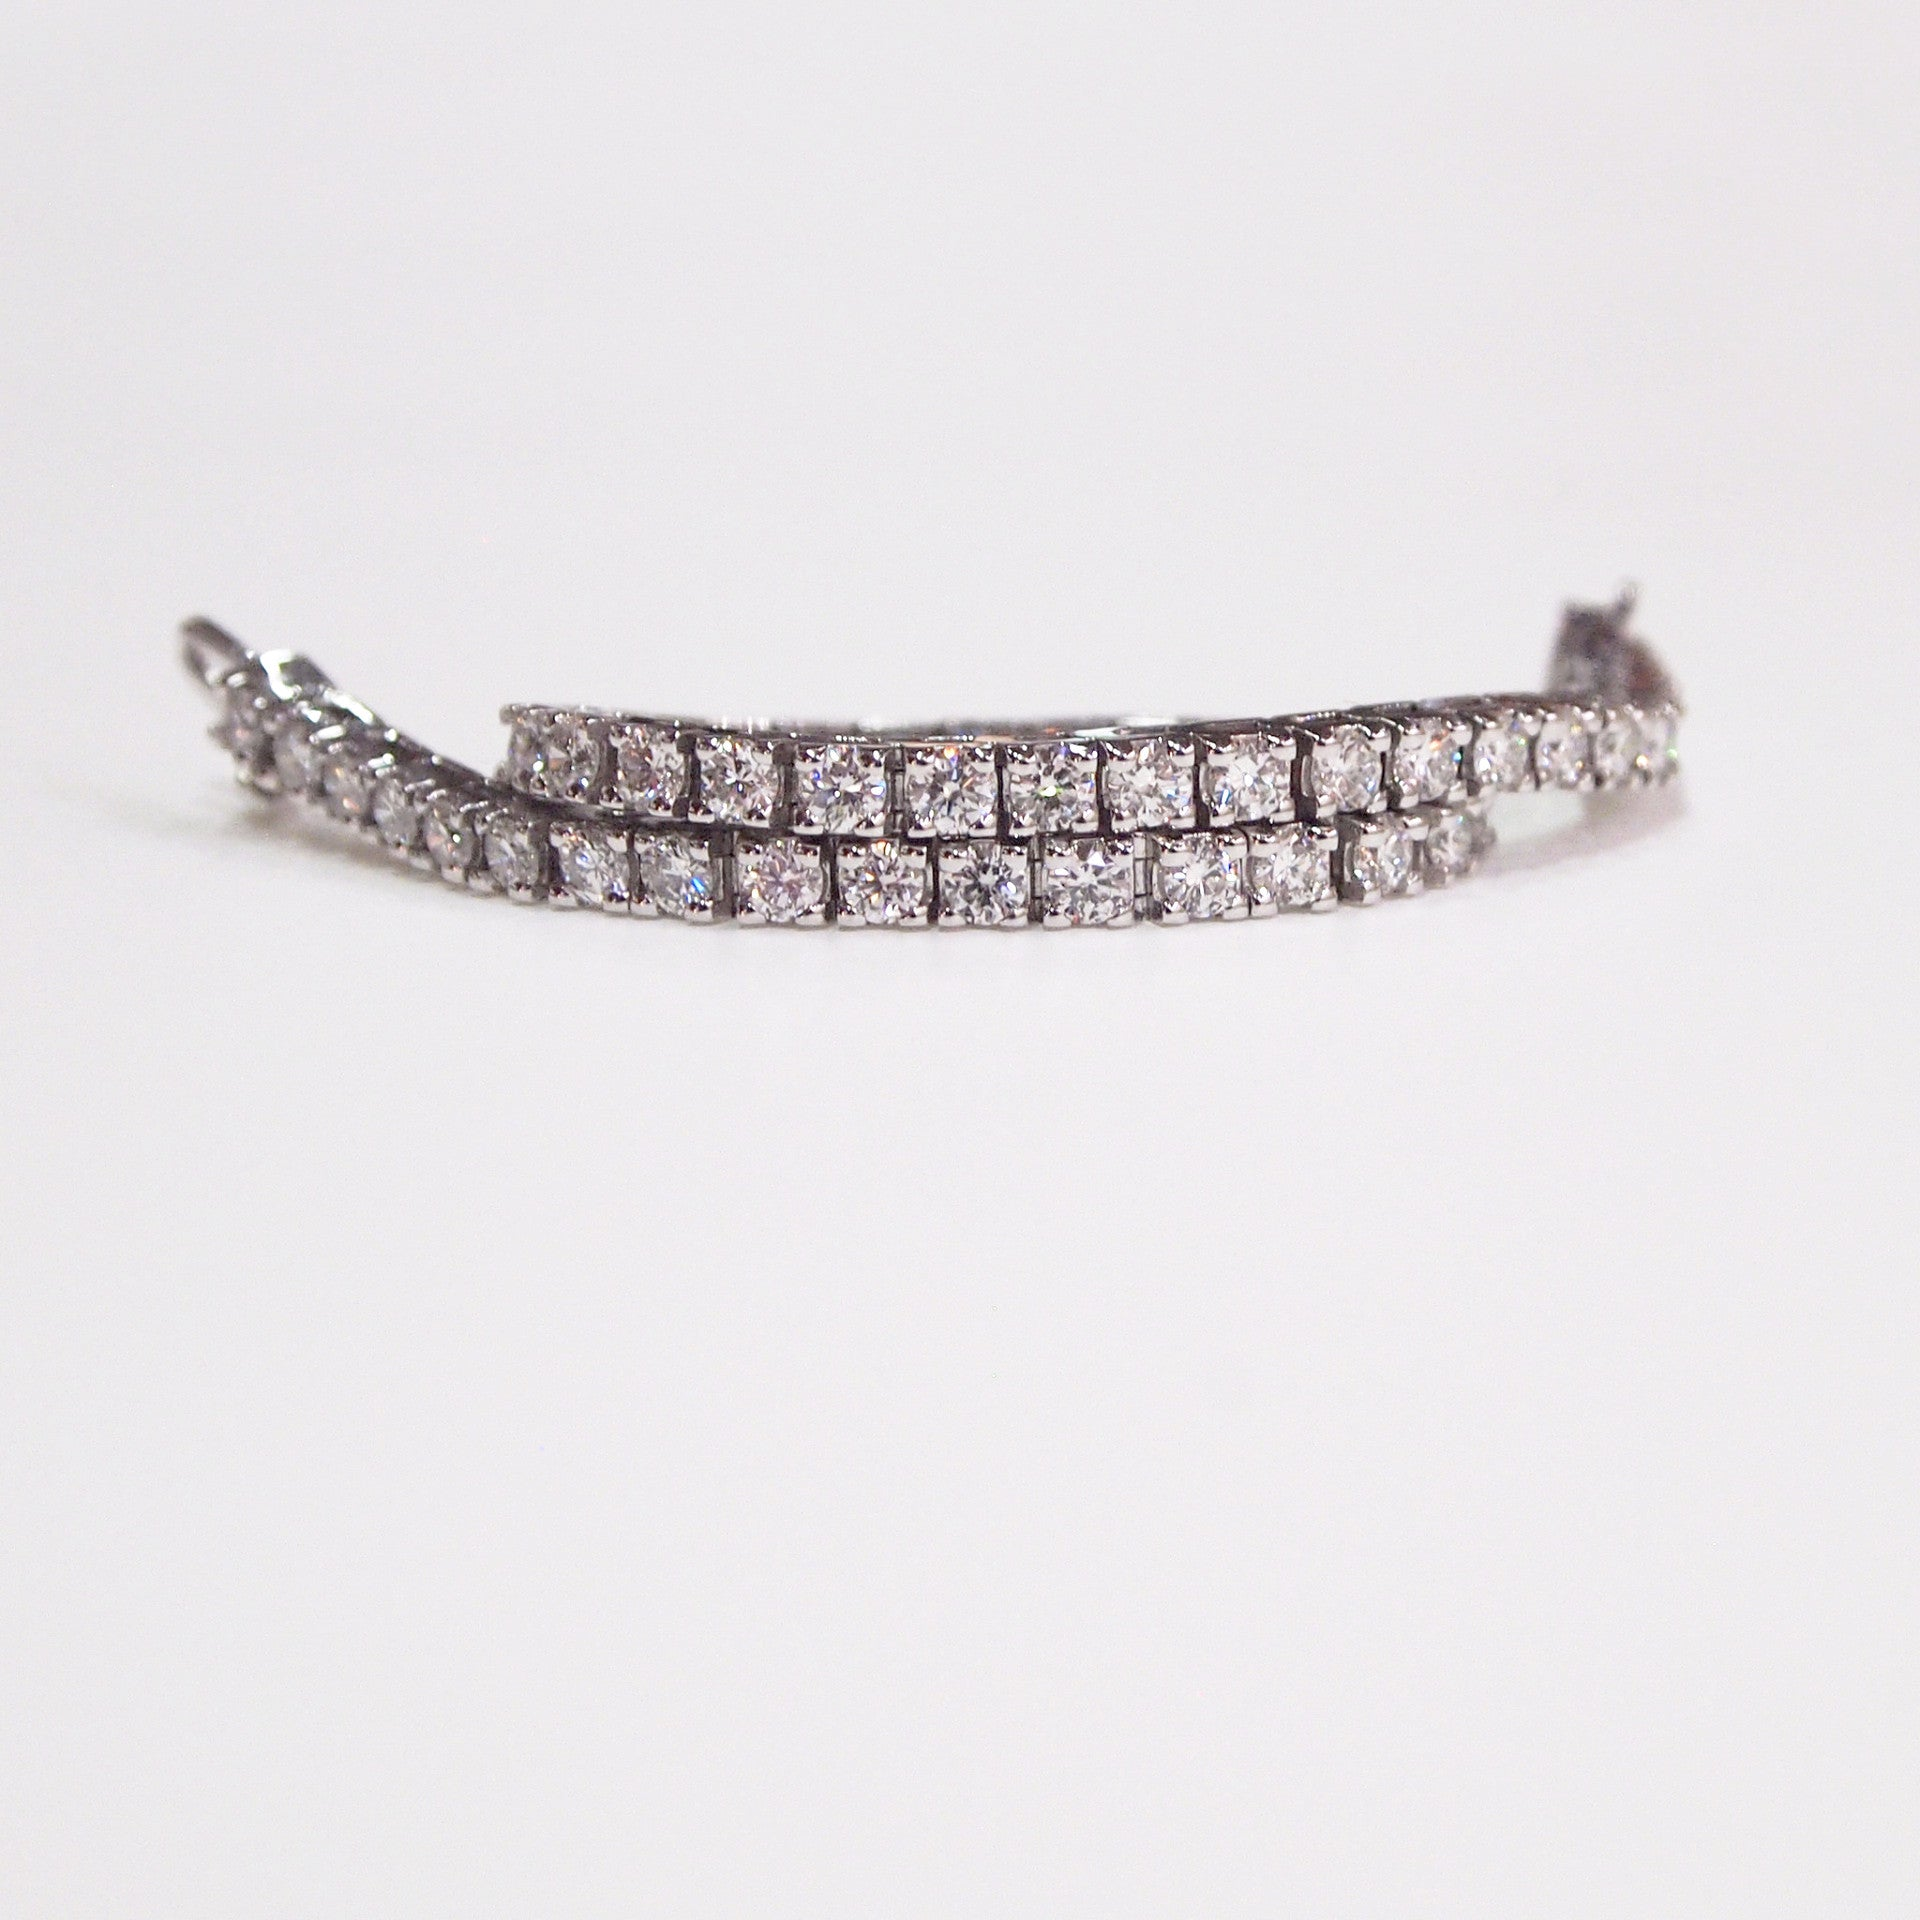 14K white gold tennis bracelet with 50 round diamonds (G/H color, VS/SI clarity) weighing a total of 5 carats.